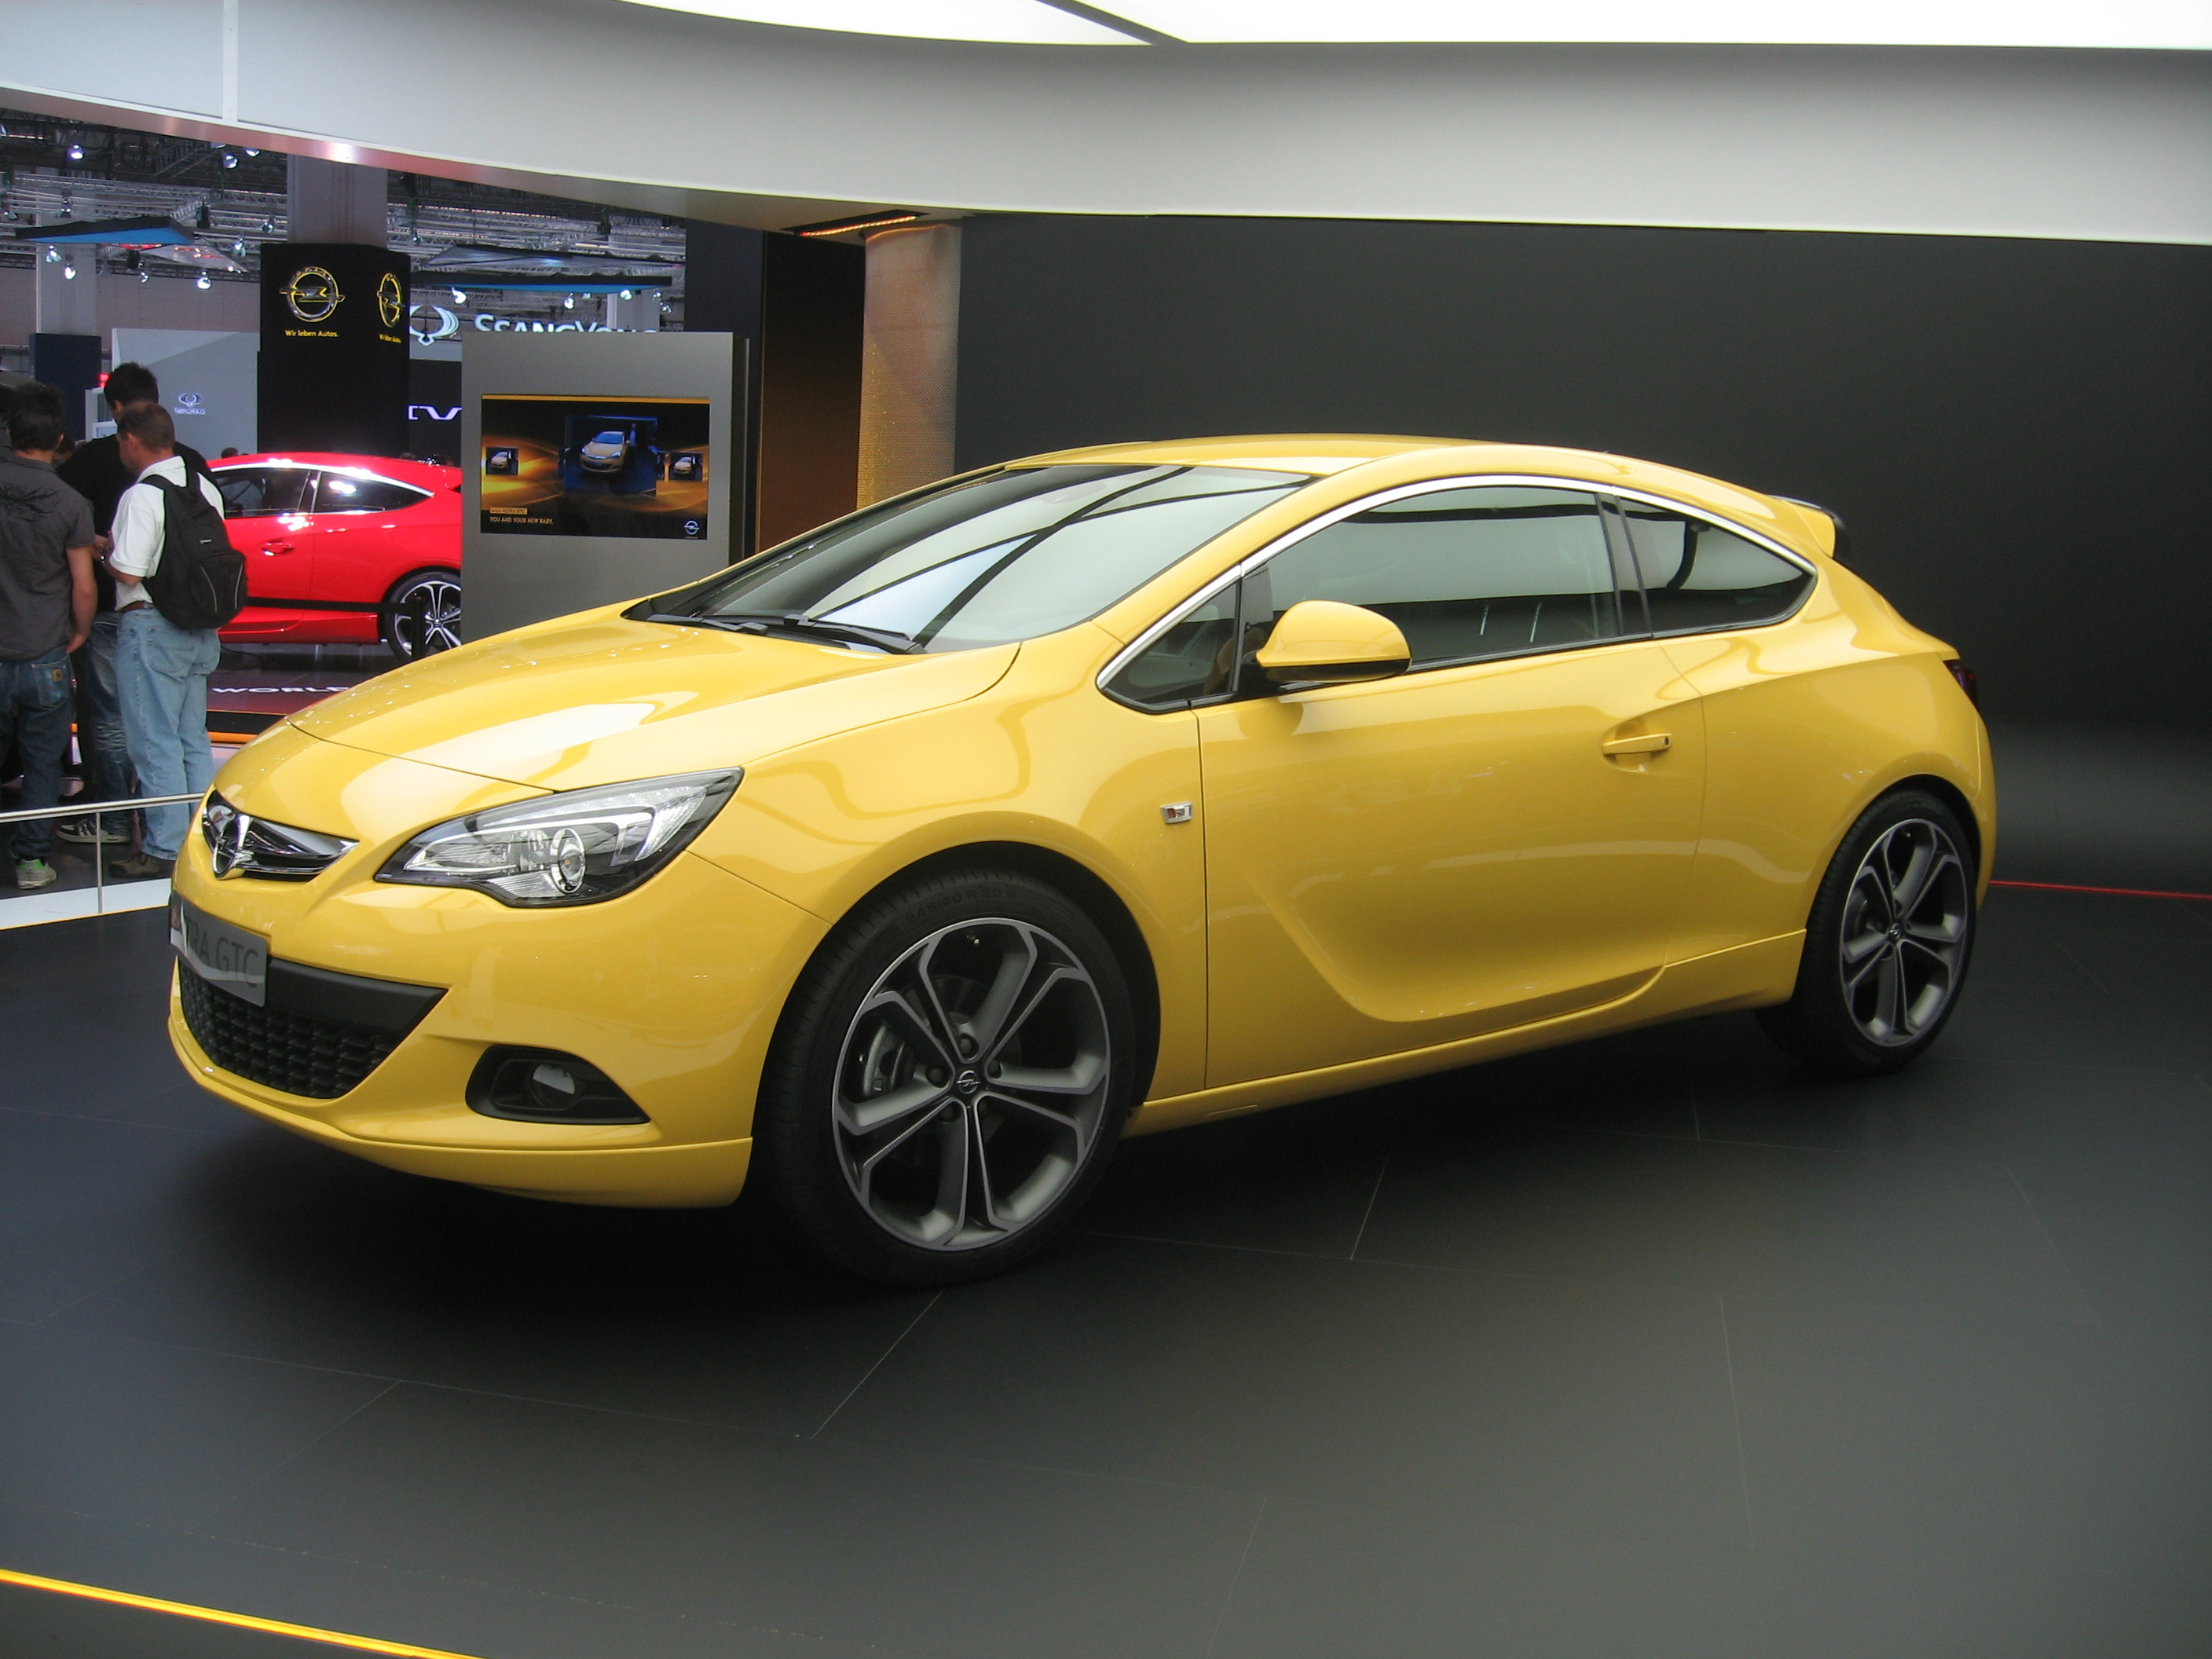 2014 opel astra j gtc pictures information and specs auto. Black Bedroom Furniture Sets. Home Design Ideas